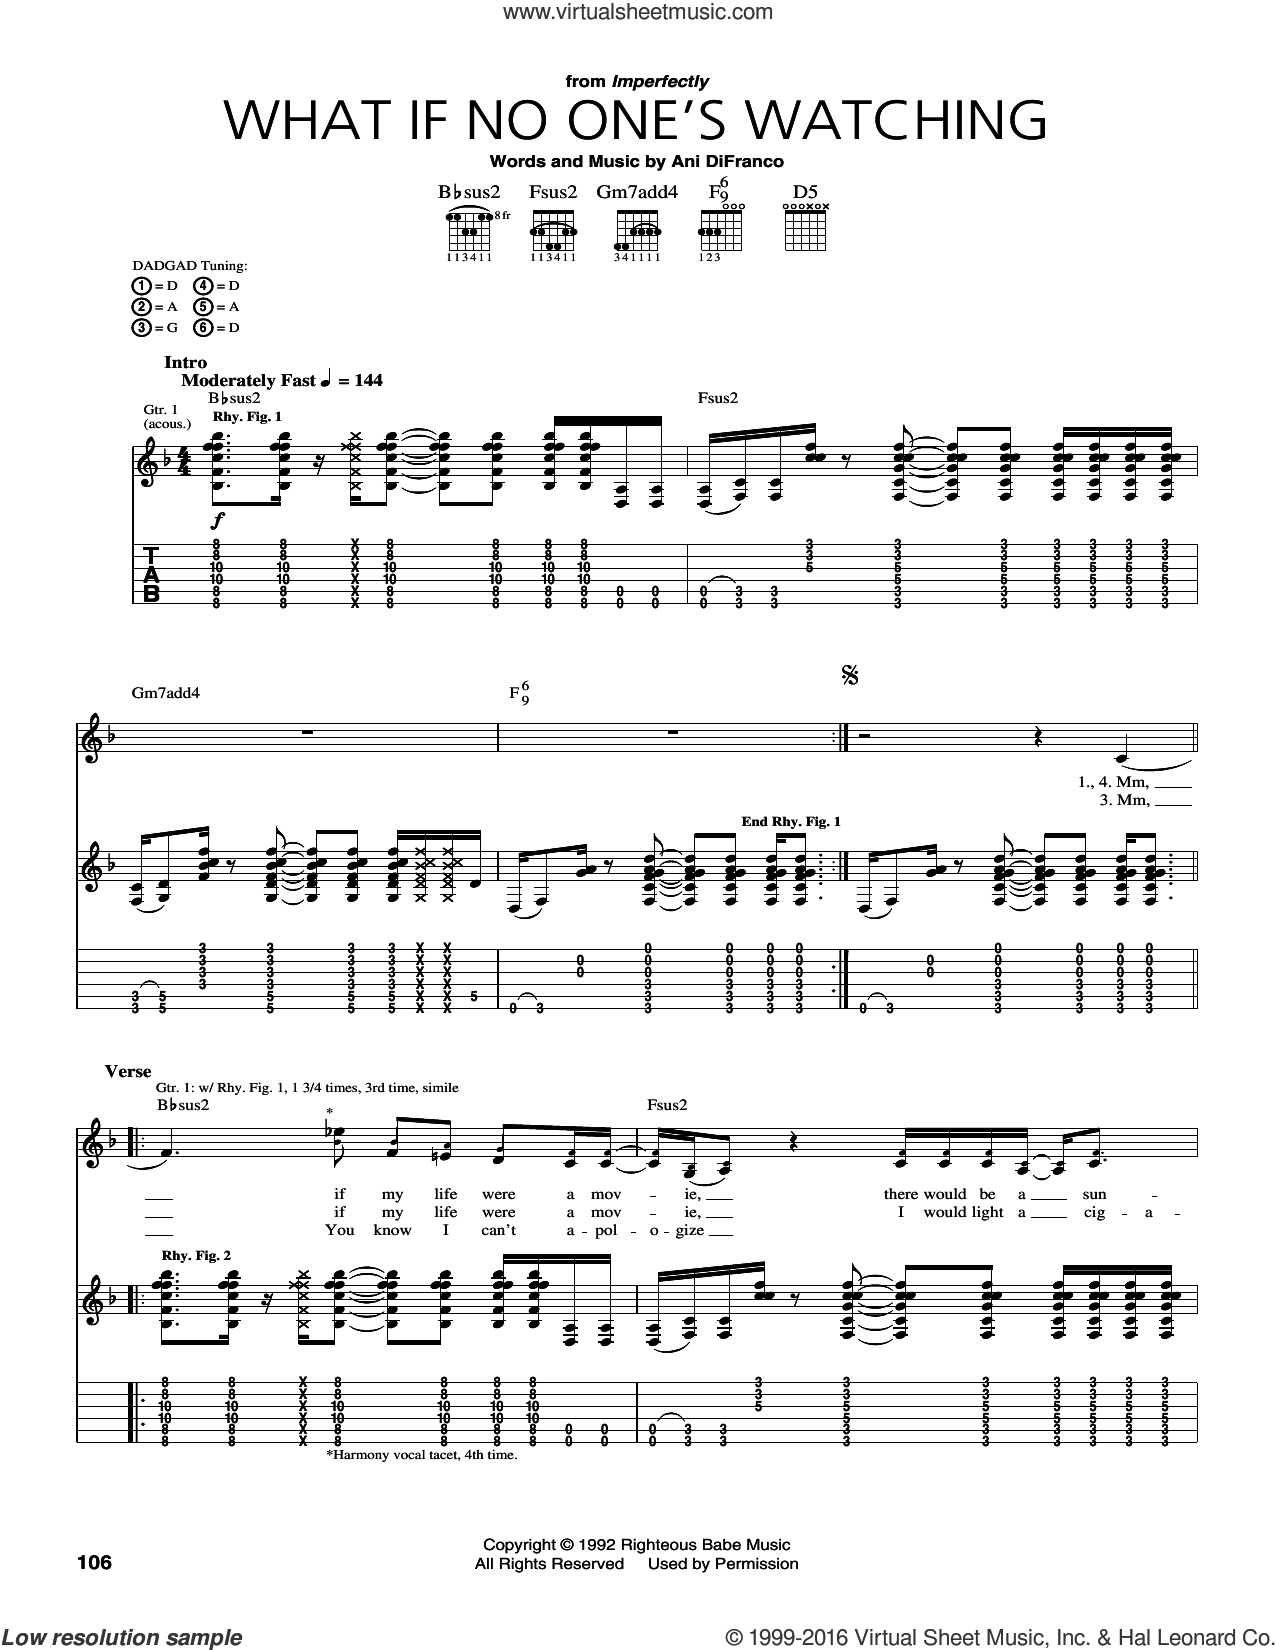 What If No One's Watching sheet music for guitar (tablature) by Ani DiFranco, intermediate